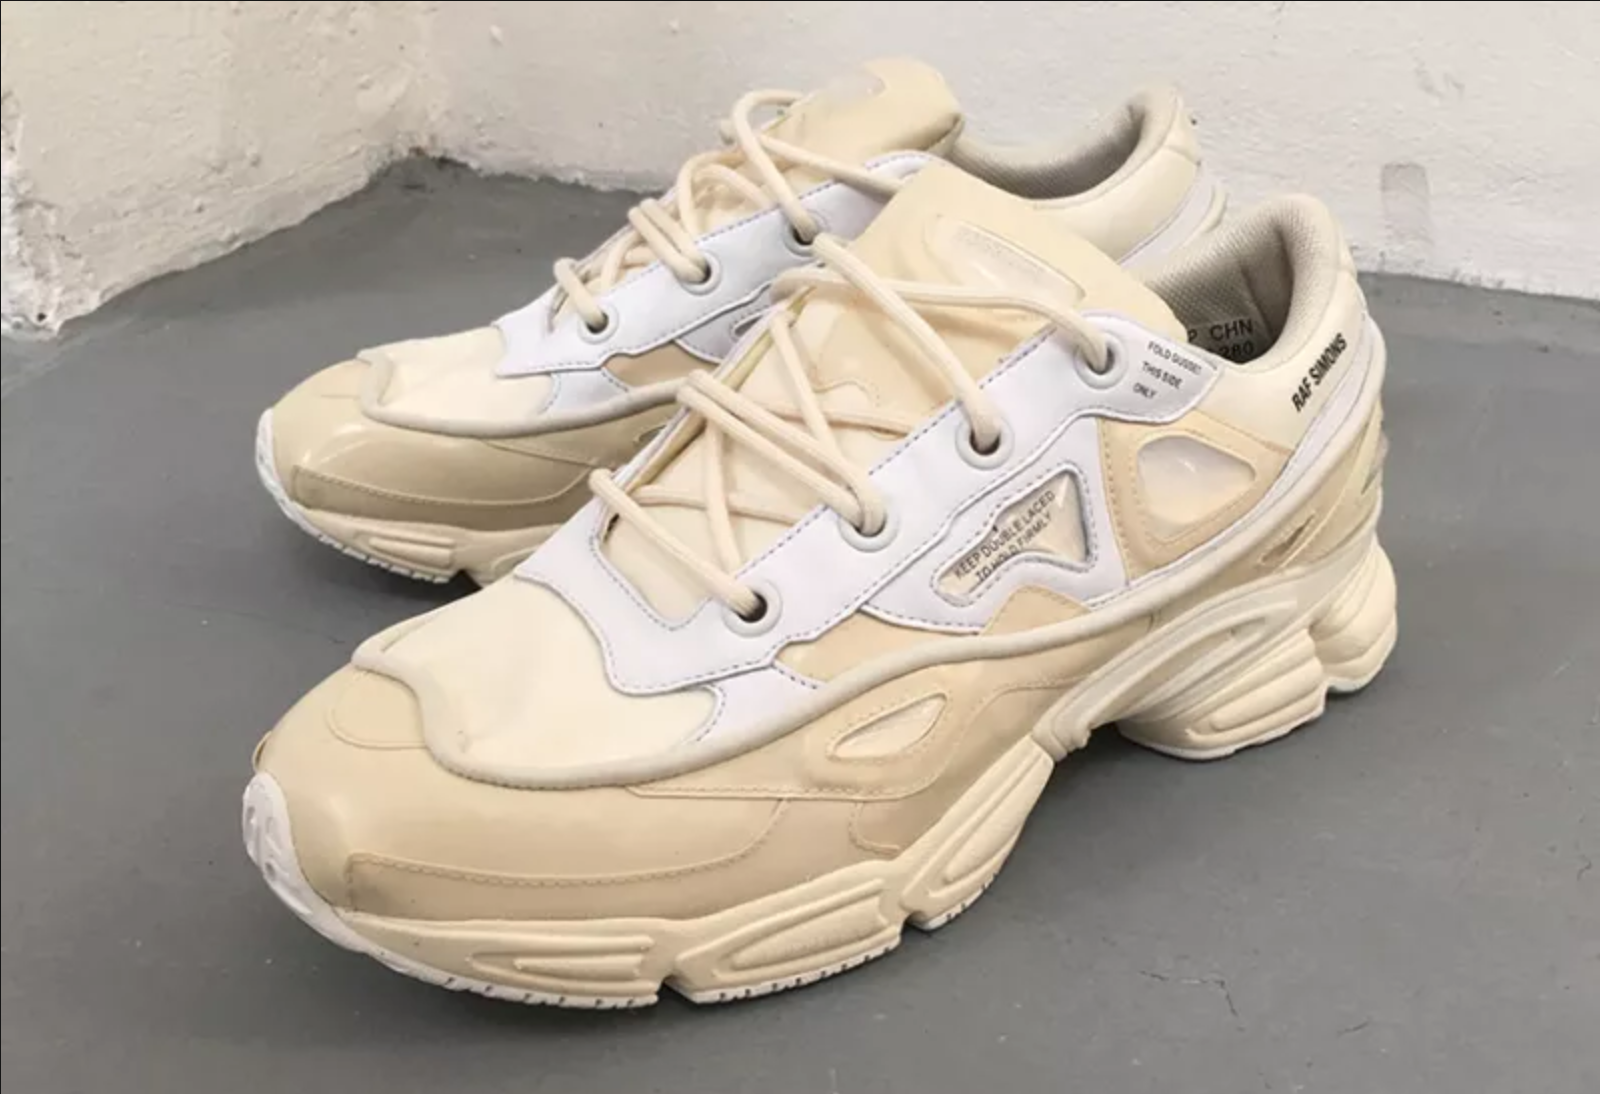 huge selection of 3240a ded47 Yeezy Mud Rat 500 Preview via Kim K - PREPBOYS - Medium